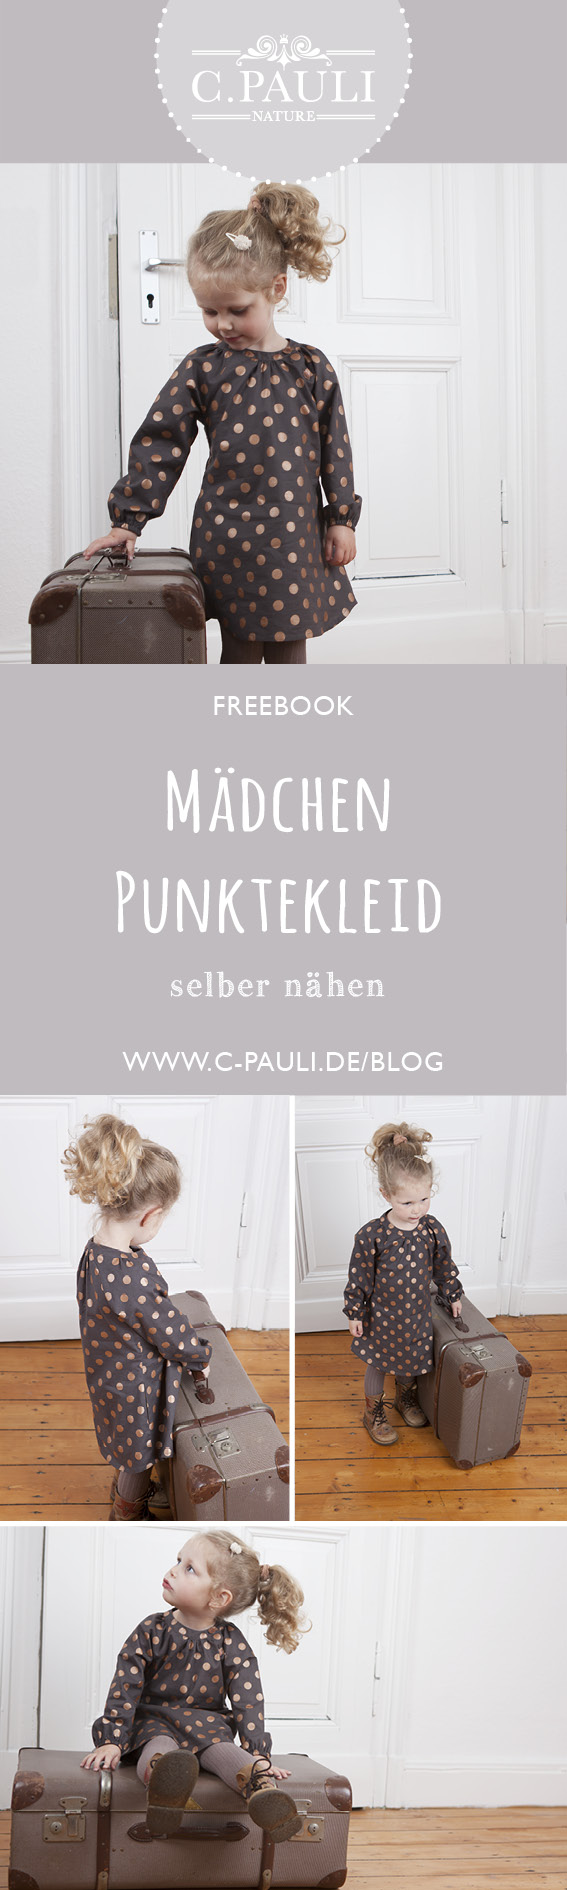 festliches punktekleid | c.pauli nature blog